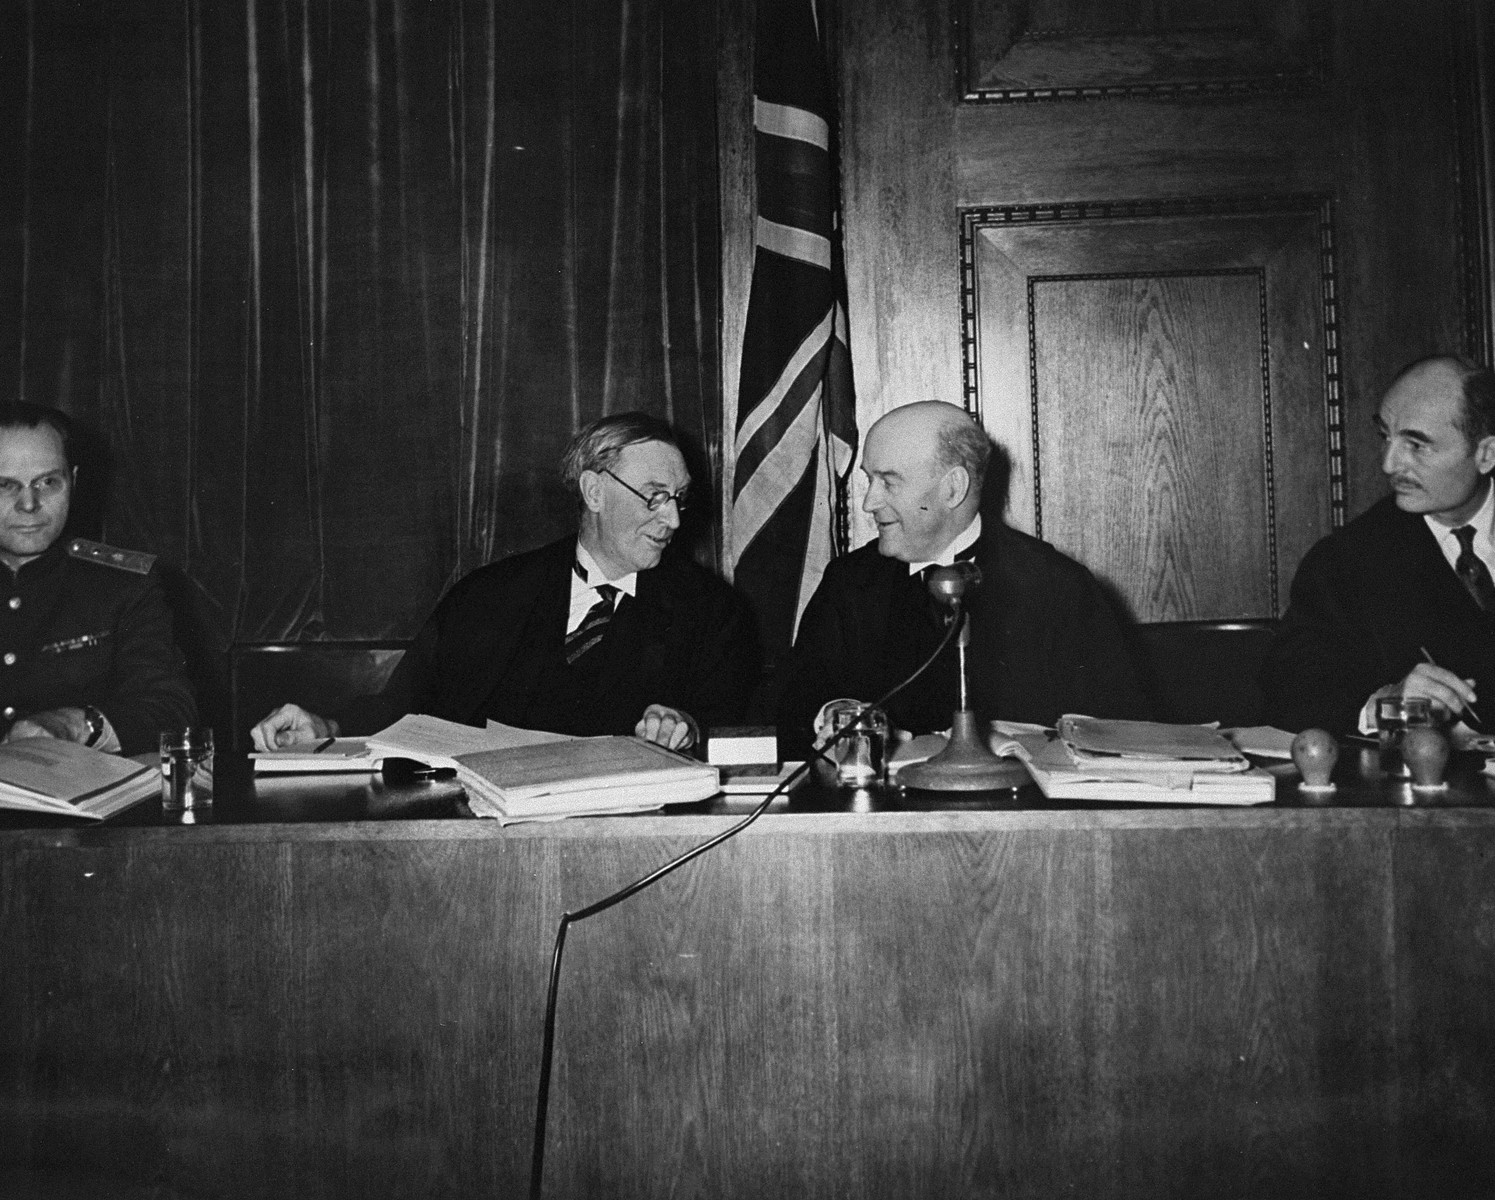 Four members of the International Military Tribunal sit on the bench in the courtroom in Nuremberg.  Pictured from left to right are: Major General I.T. Nikitchenko (Soviet), Justice Norman Birkett (British) Lord Justice Geoffrey Lawrence (British), and Francis Biddle (American).